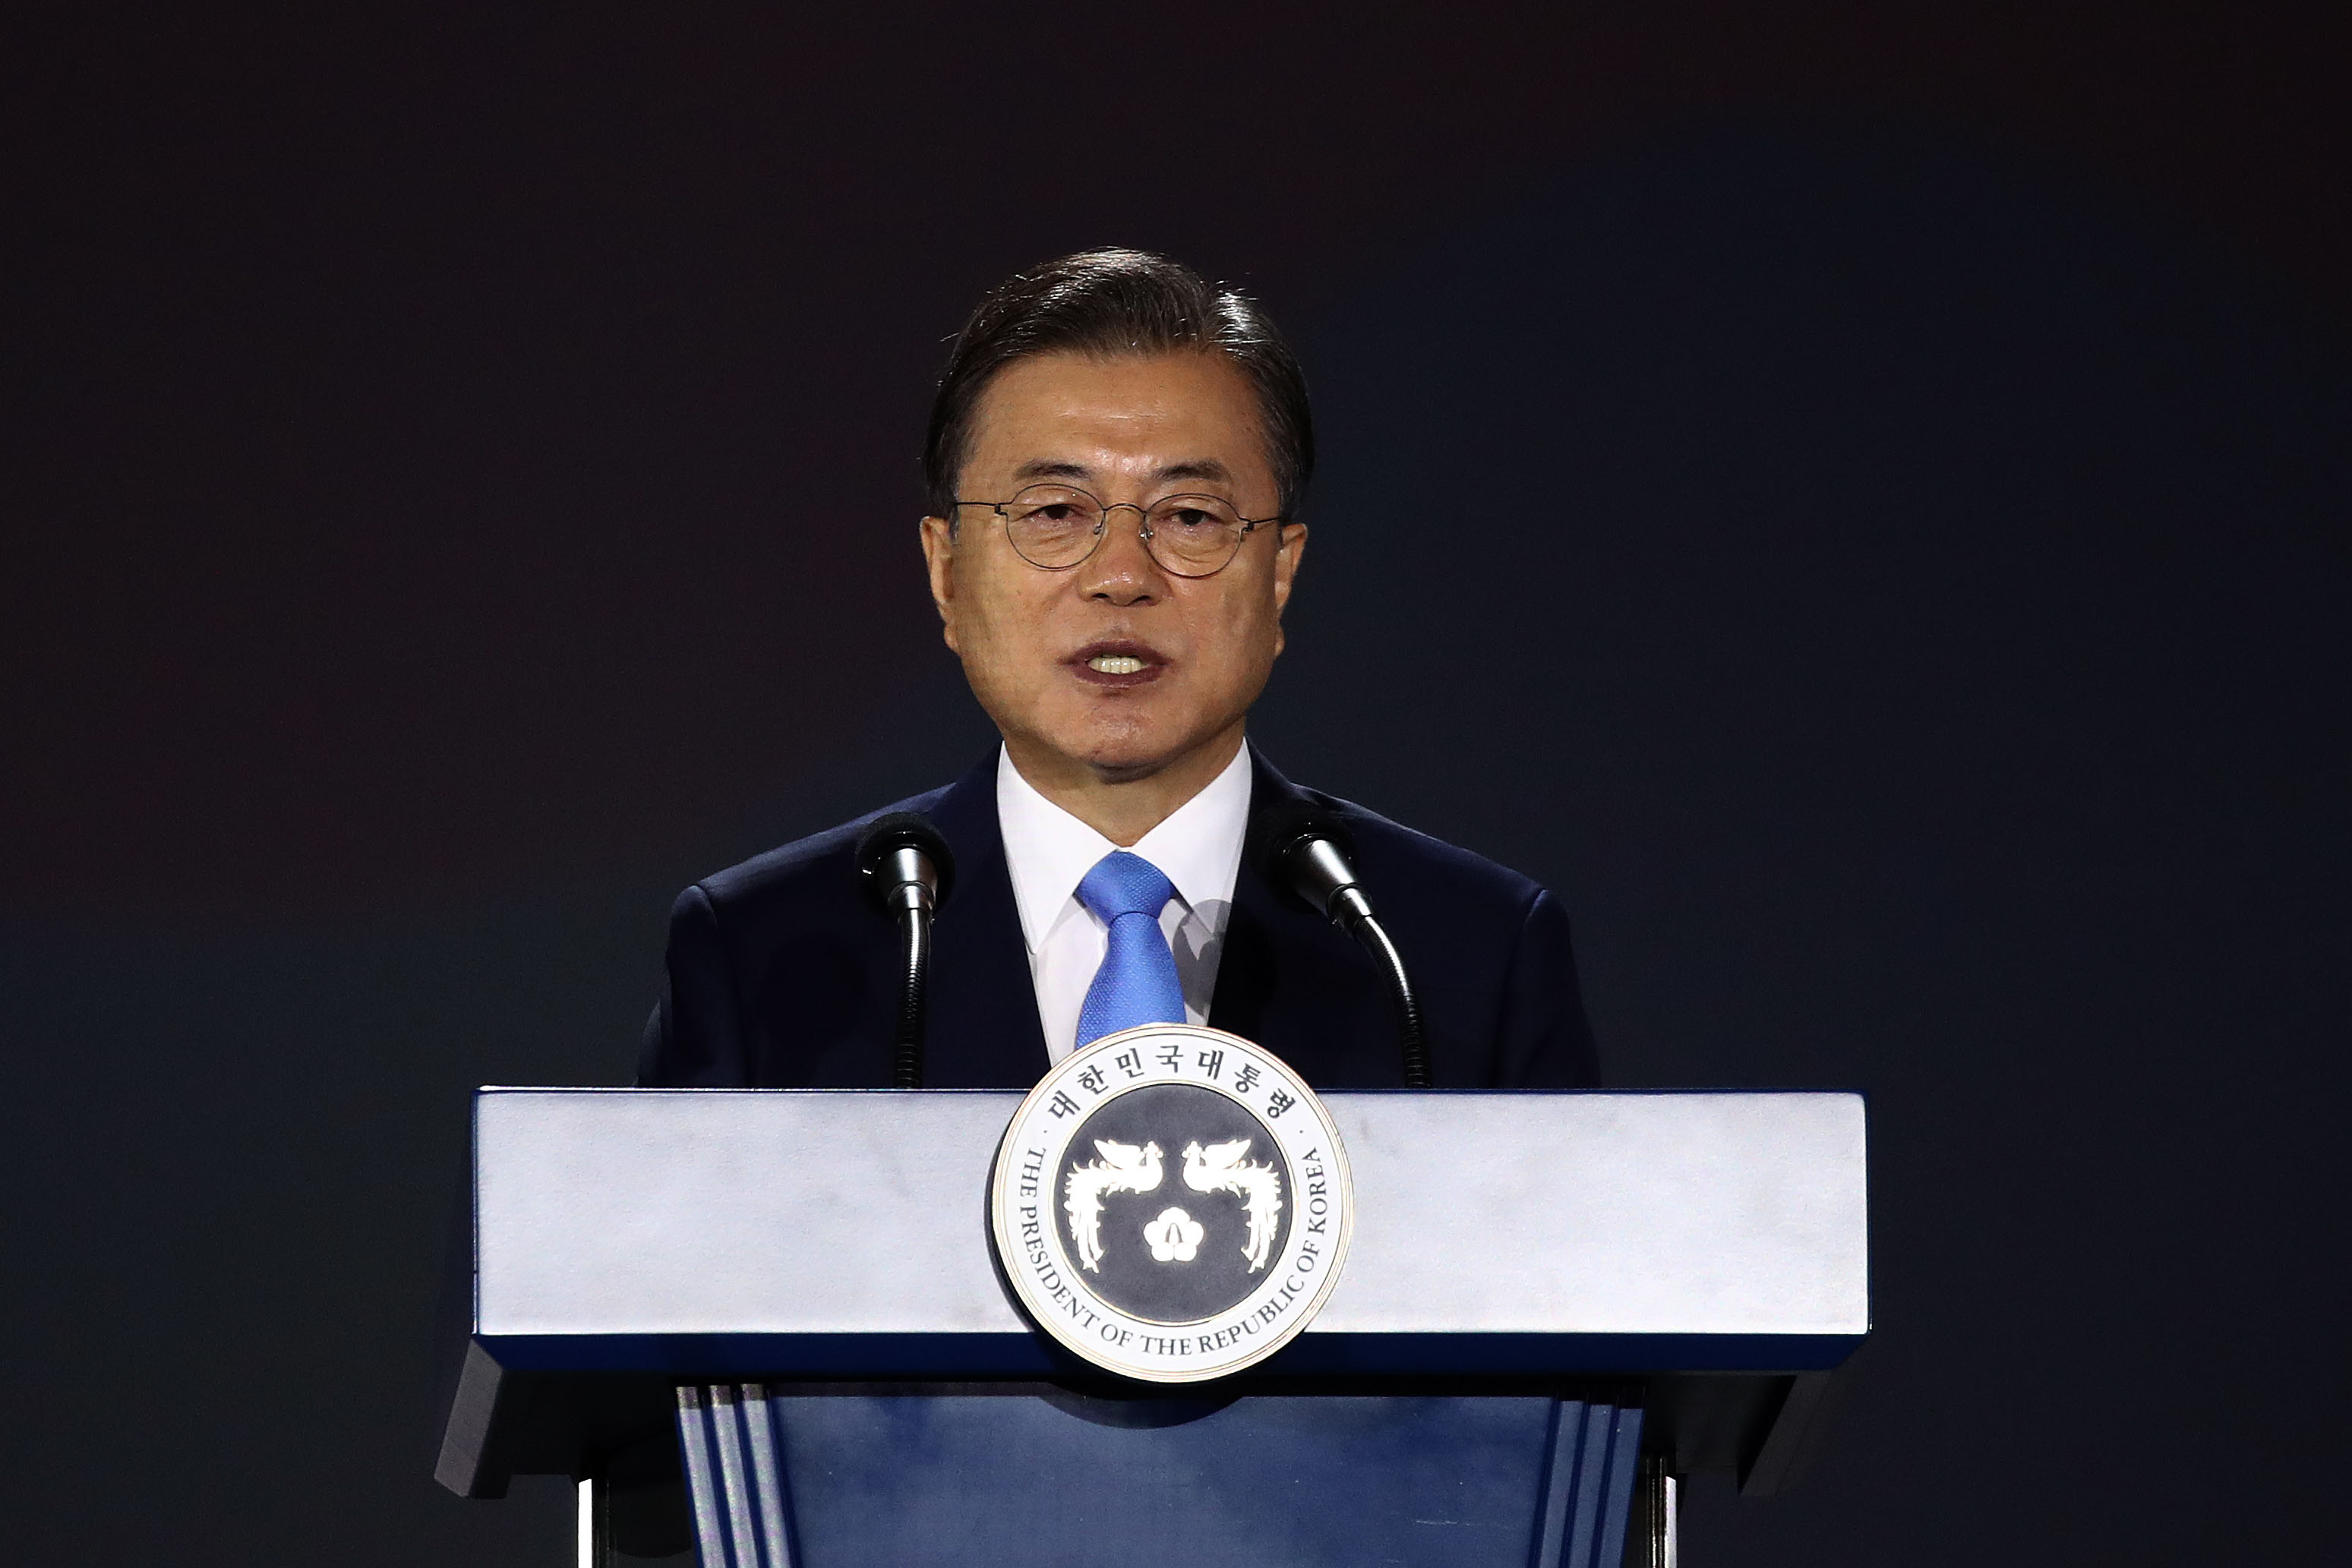 South Korea's President Moon Jae-in speaks at an event in Seoul on August 15.